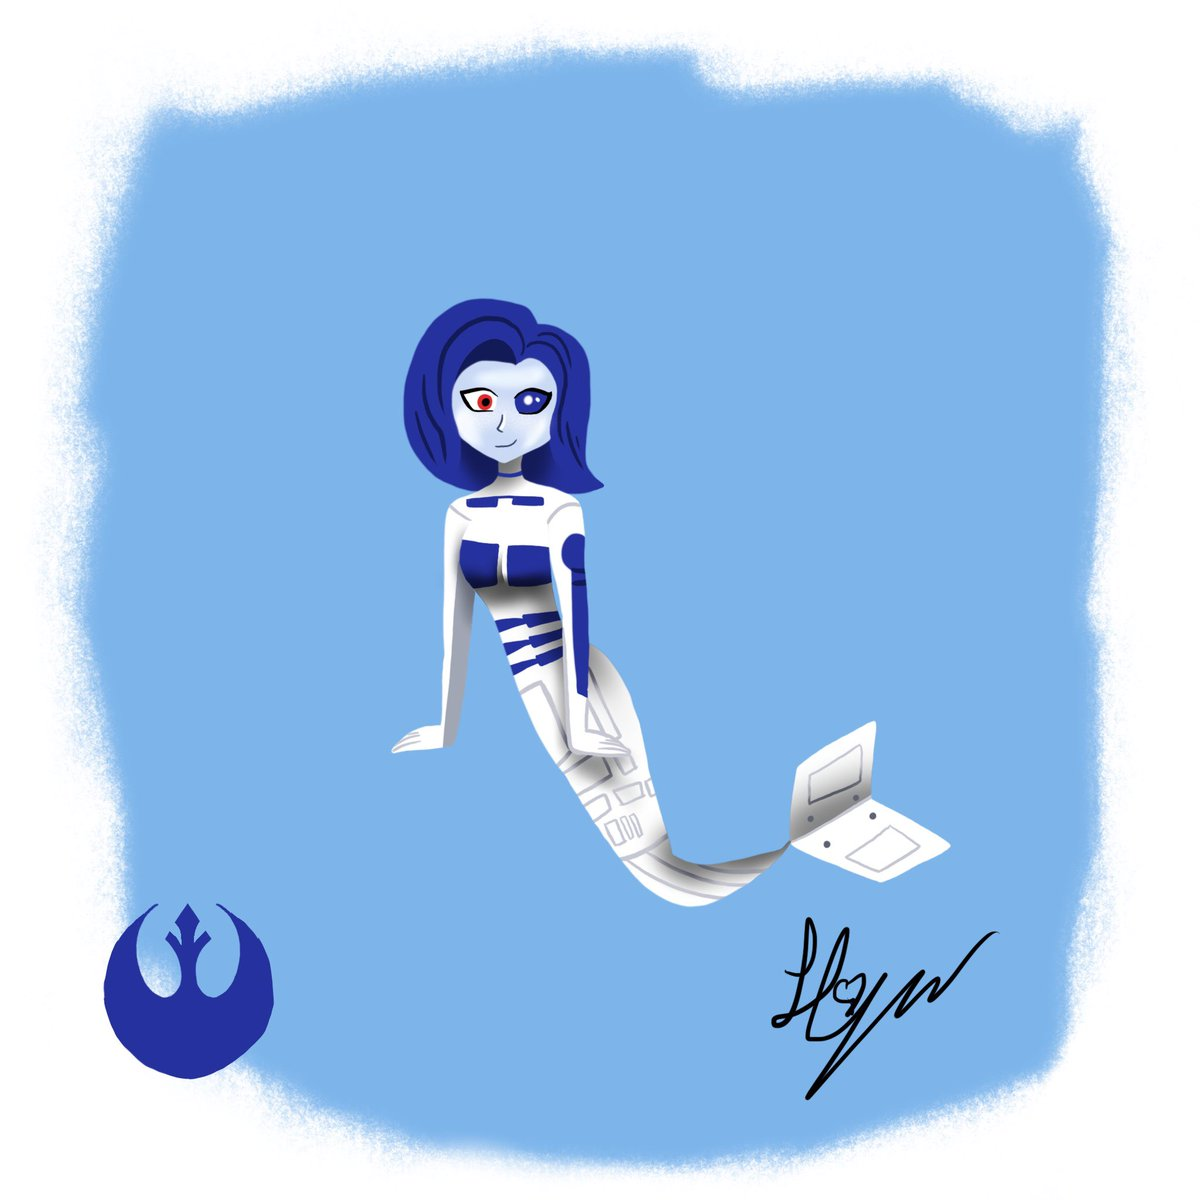 Mermay the 4th be with you! Have a genderbent R2D2 mermaid! Any requests for the MerMay revenge of the 5th? #mermay #mermay2021 #mermayprompts #mermaychallenge #starwars #r2d2 #maythe4thbewithyou #r2d2art